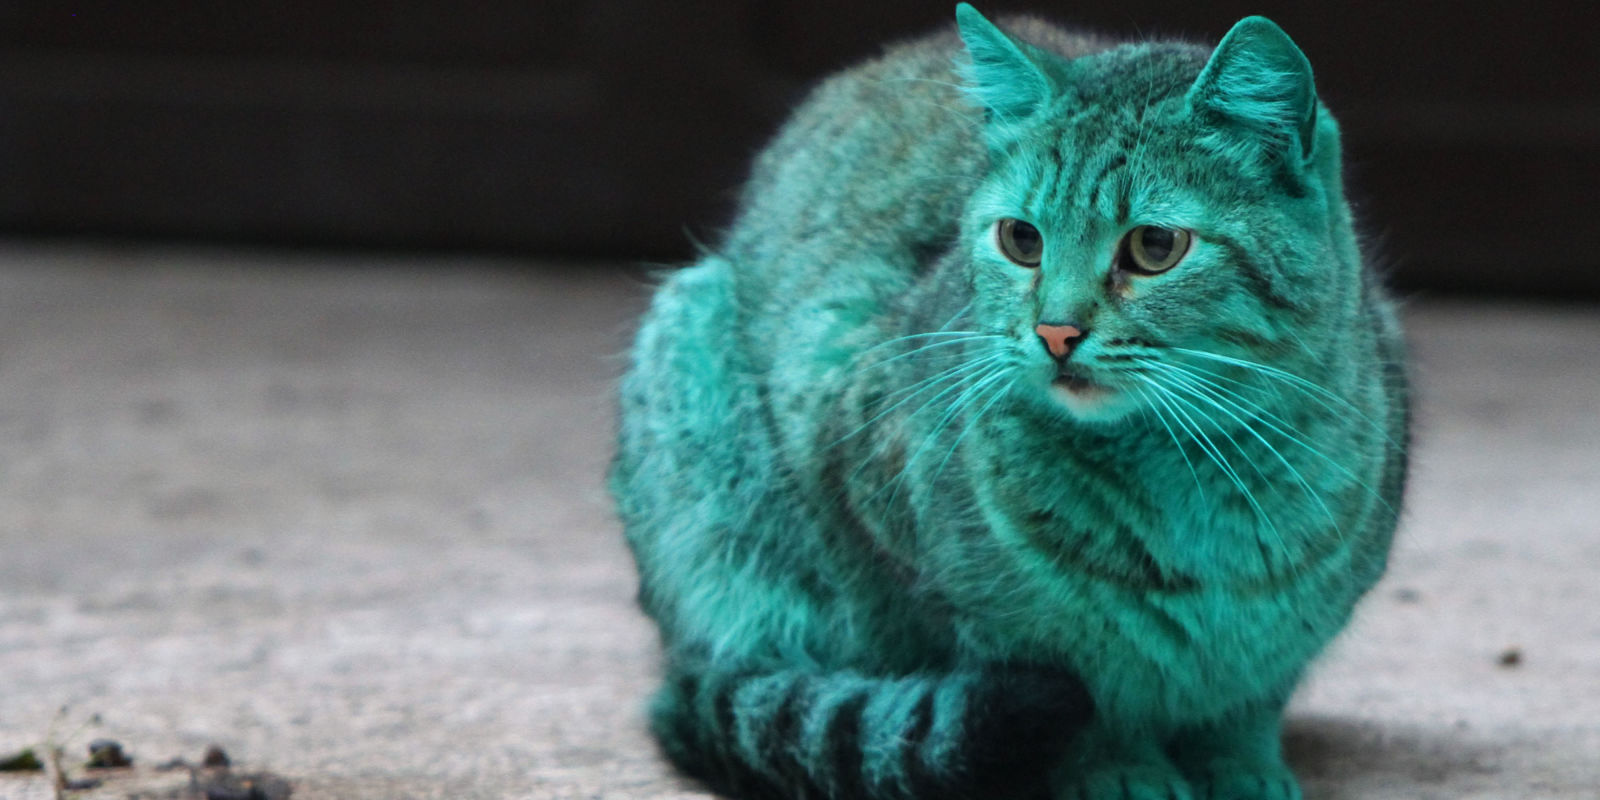 There S A Bright Green Cat Just Chilling In The Streets Of